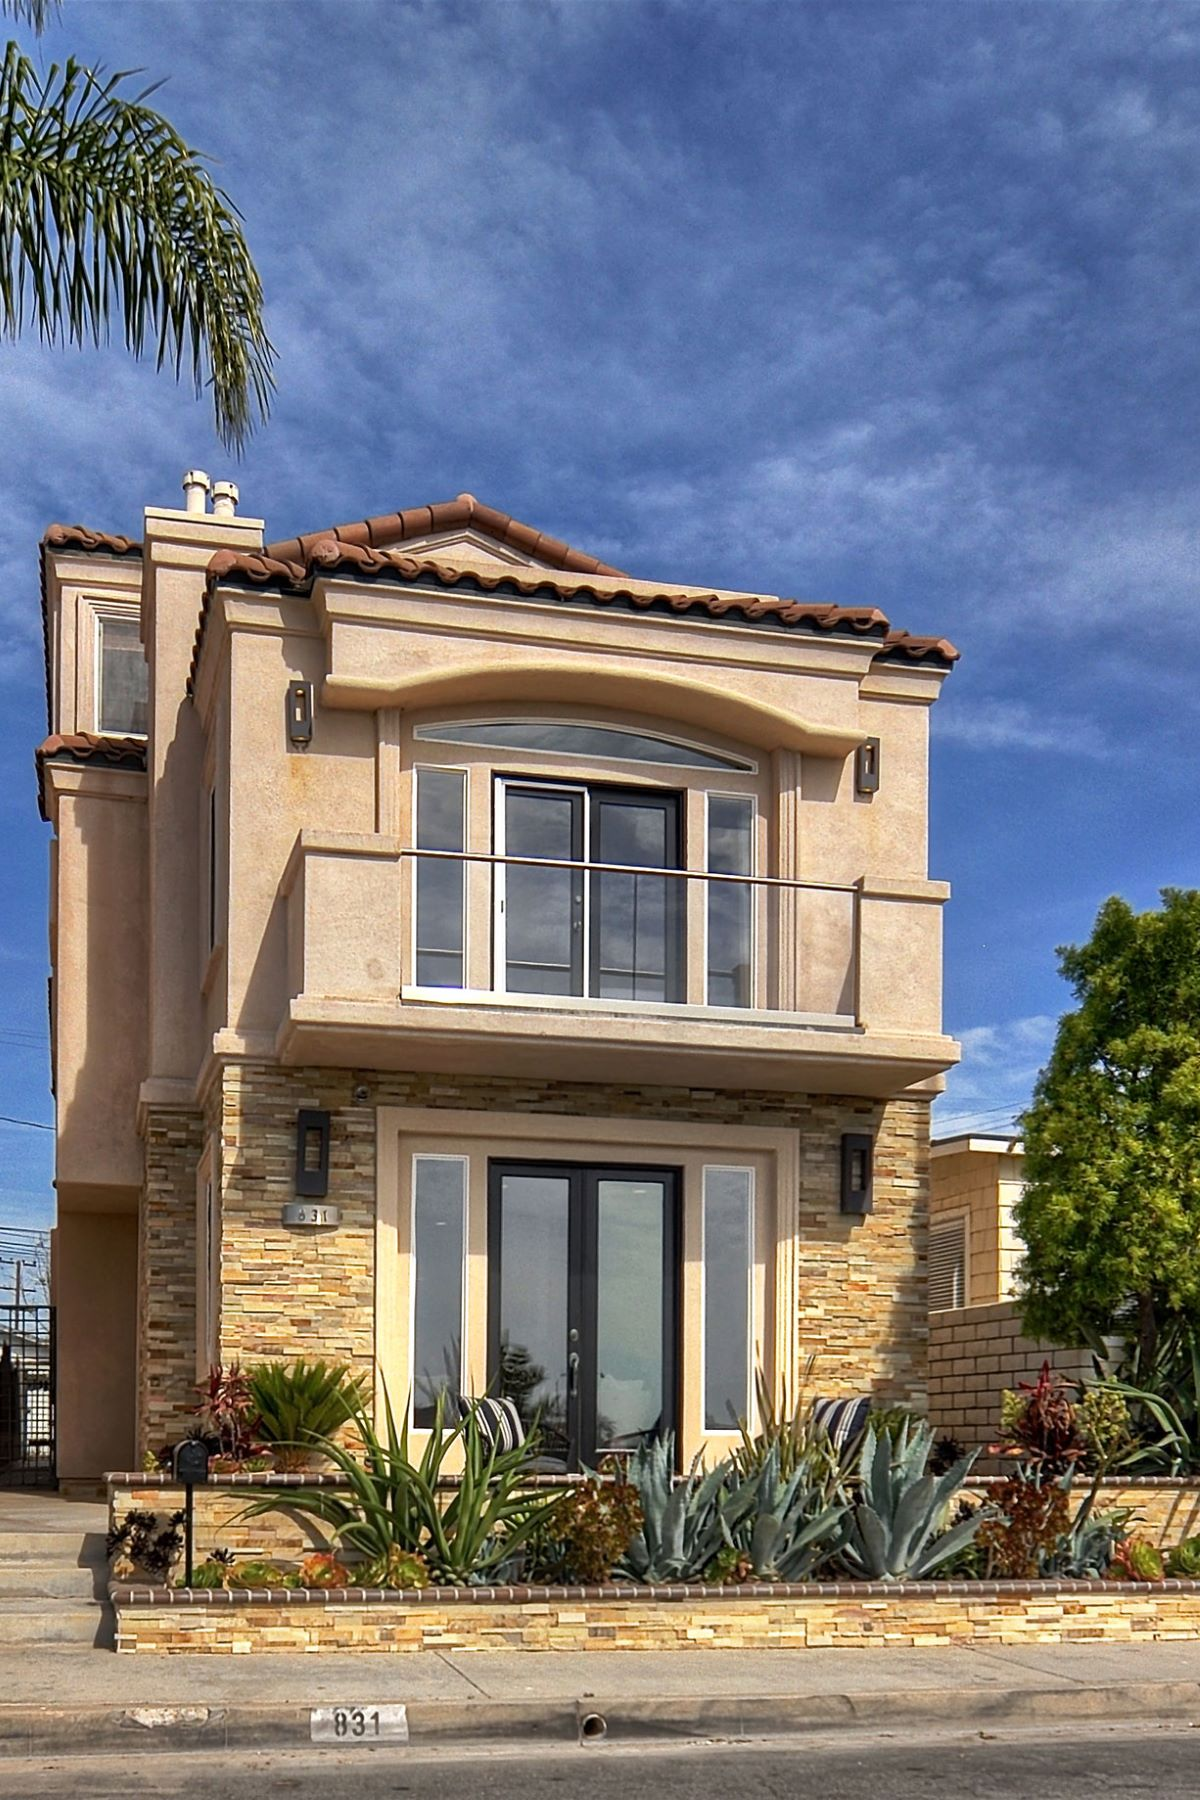 Single Family Home for Sale at 831 Frankfort Avenue Huntington Beach, California, 92648 United States